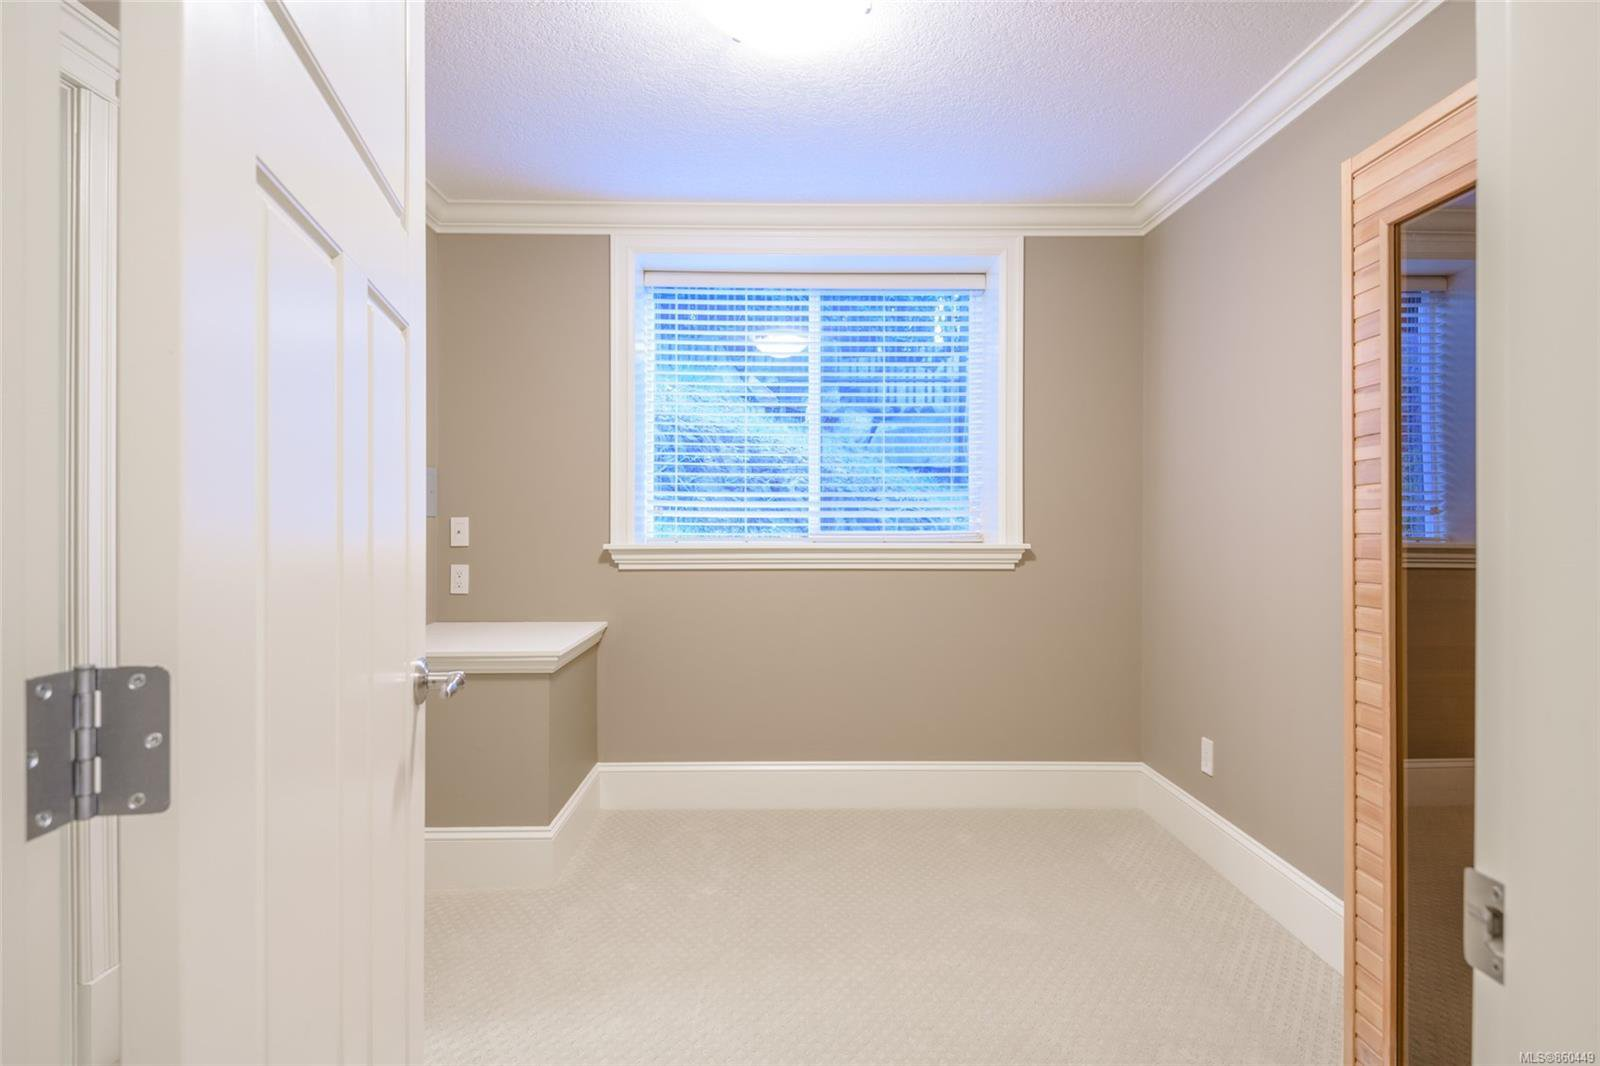 Photo 32: Photos: 5019 Hinrich View in : Na North Nanaimo House for sale (Nanaimo)  : MLS®# 860449